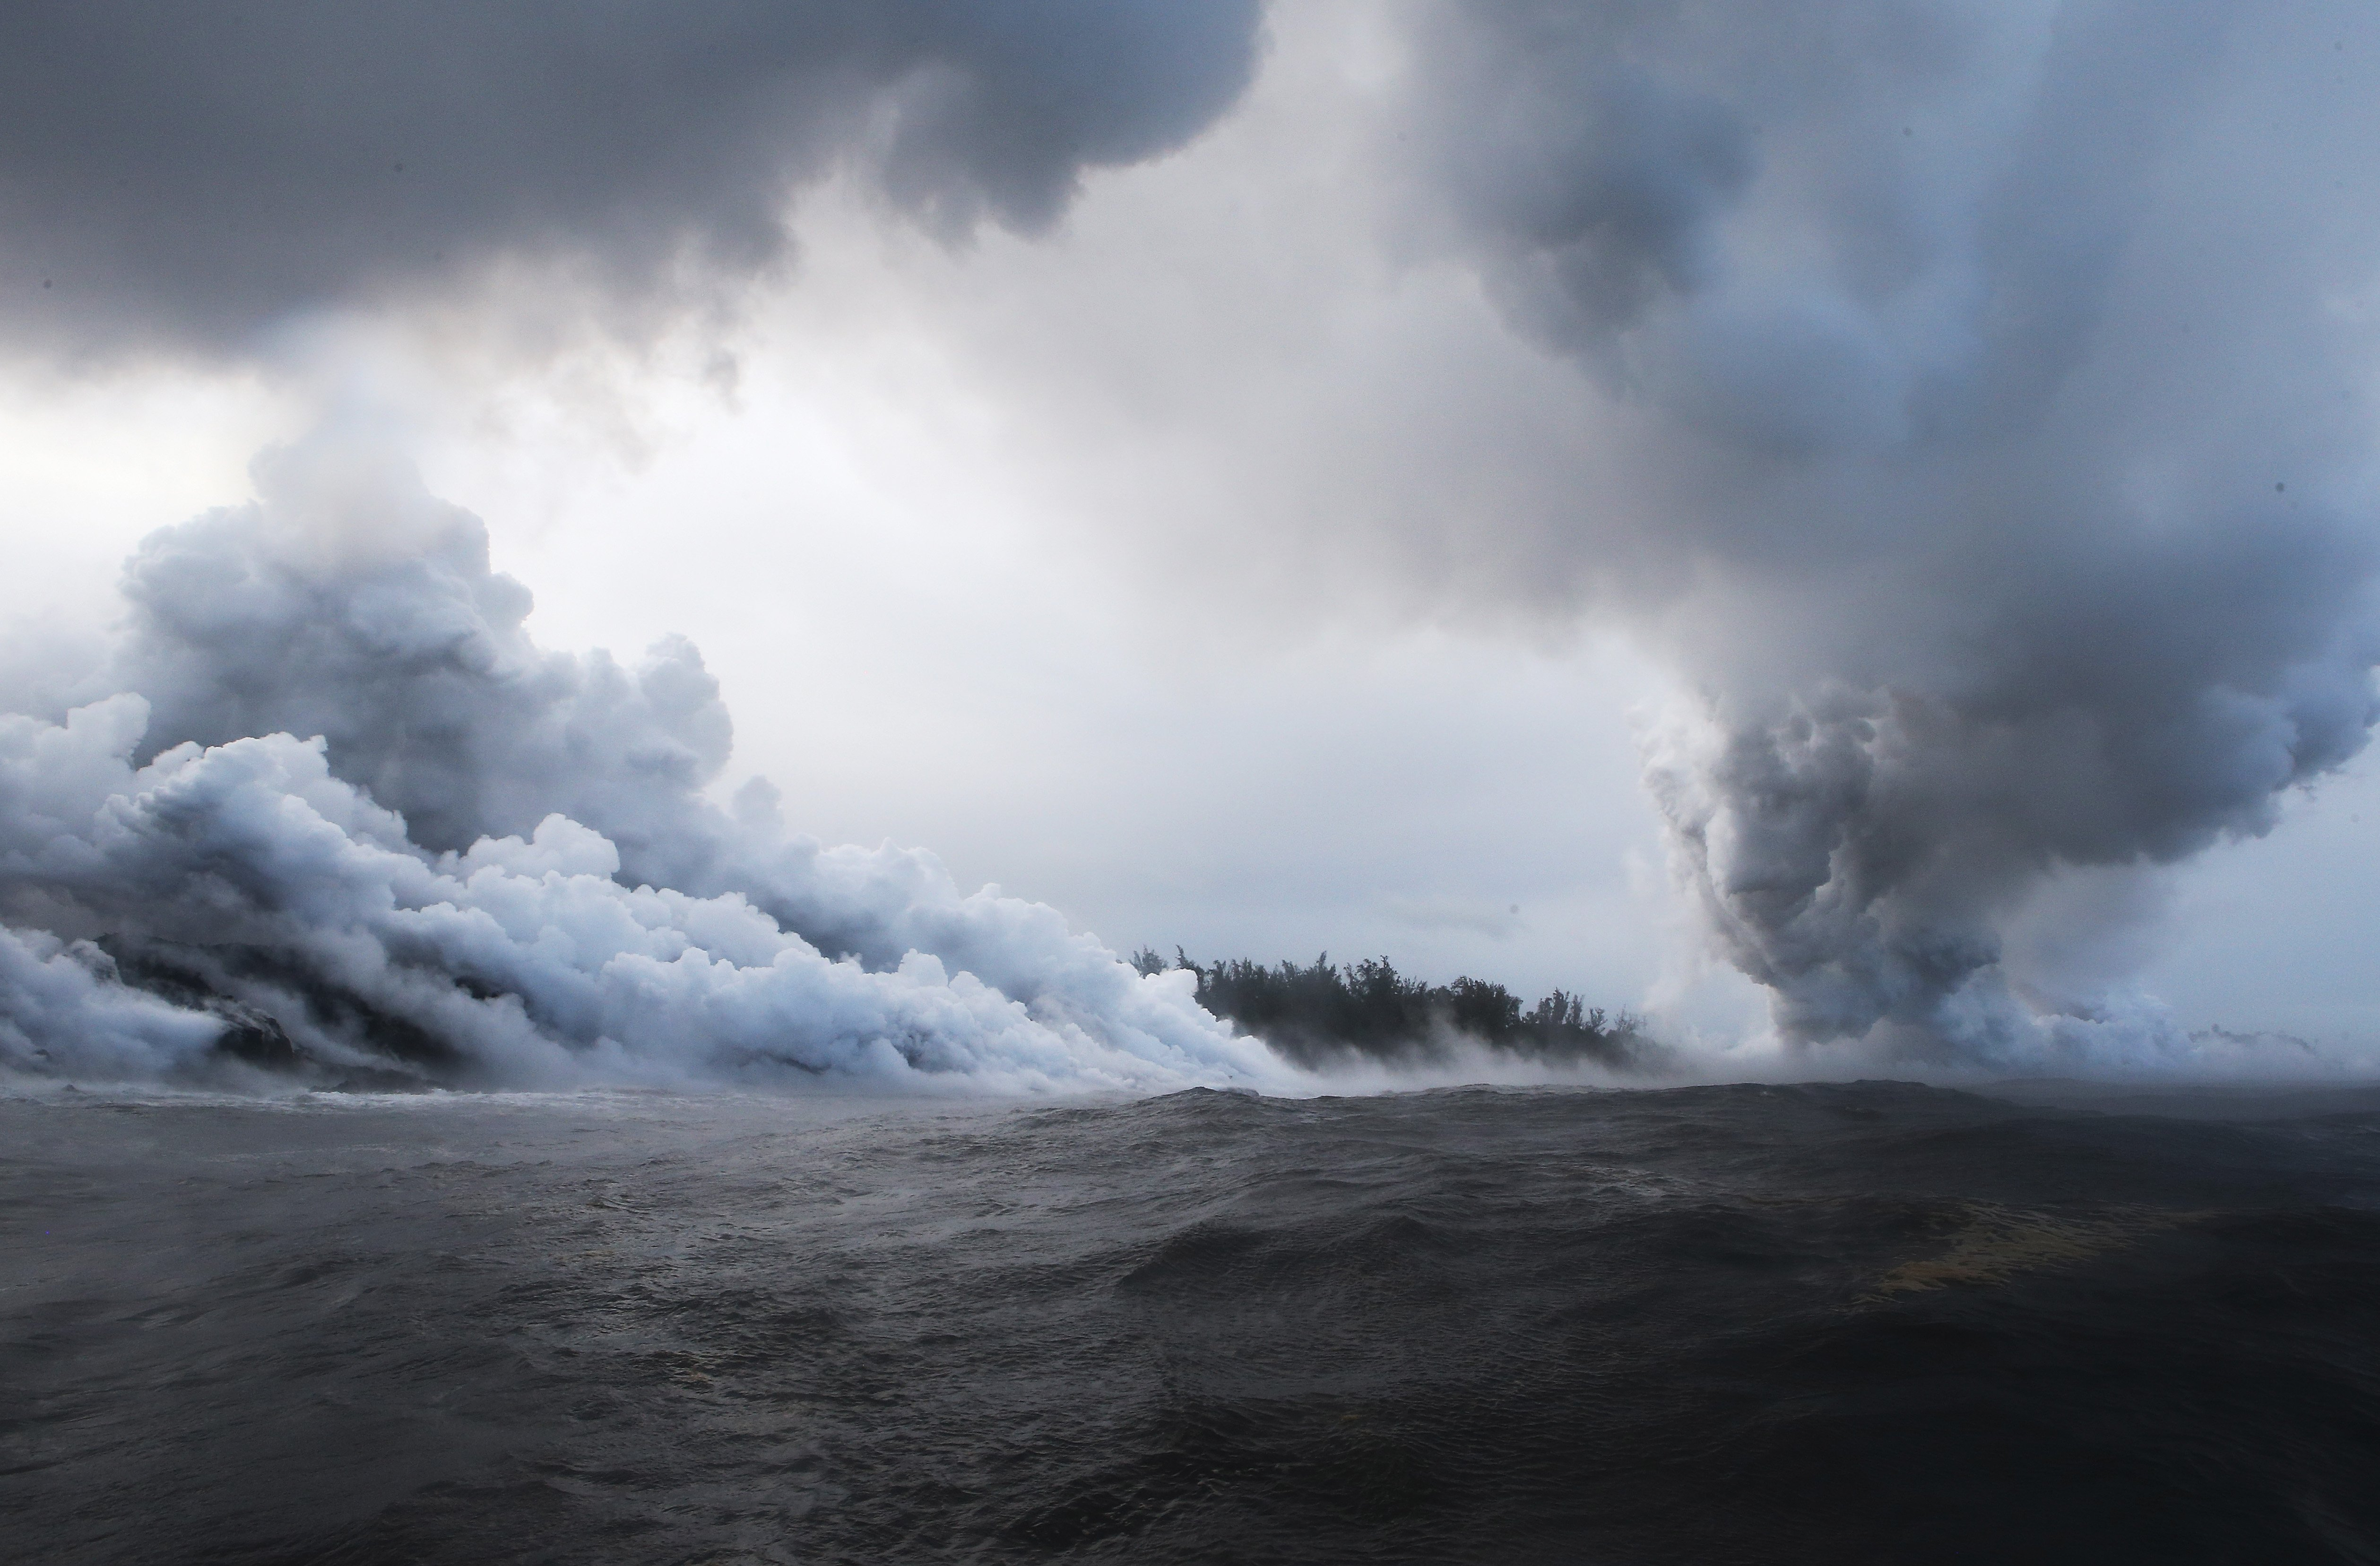 A steam plume rises from lava entering the Pacific Ocean, after flowing to the water from a Kilauea volcano fissure, on Hawaii's Big Island on May 20, 2018 in Pahoa, Hawaii.